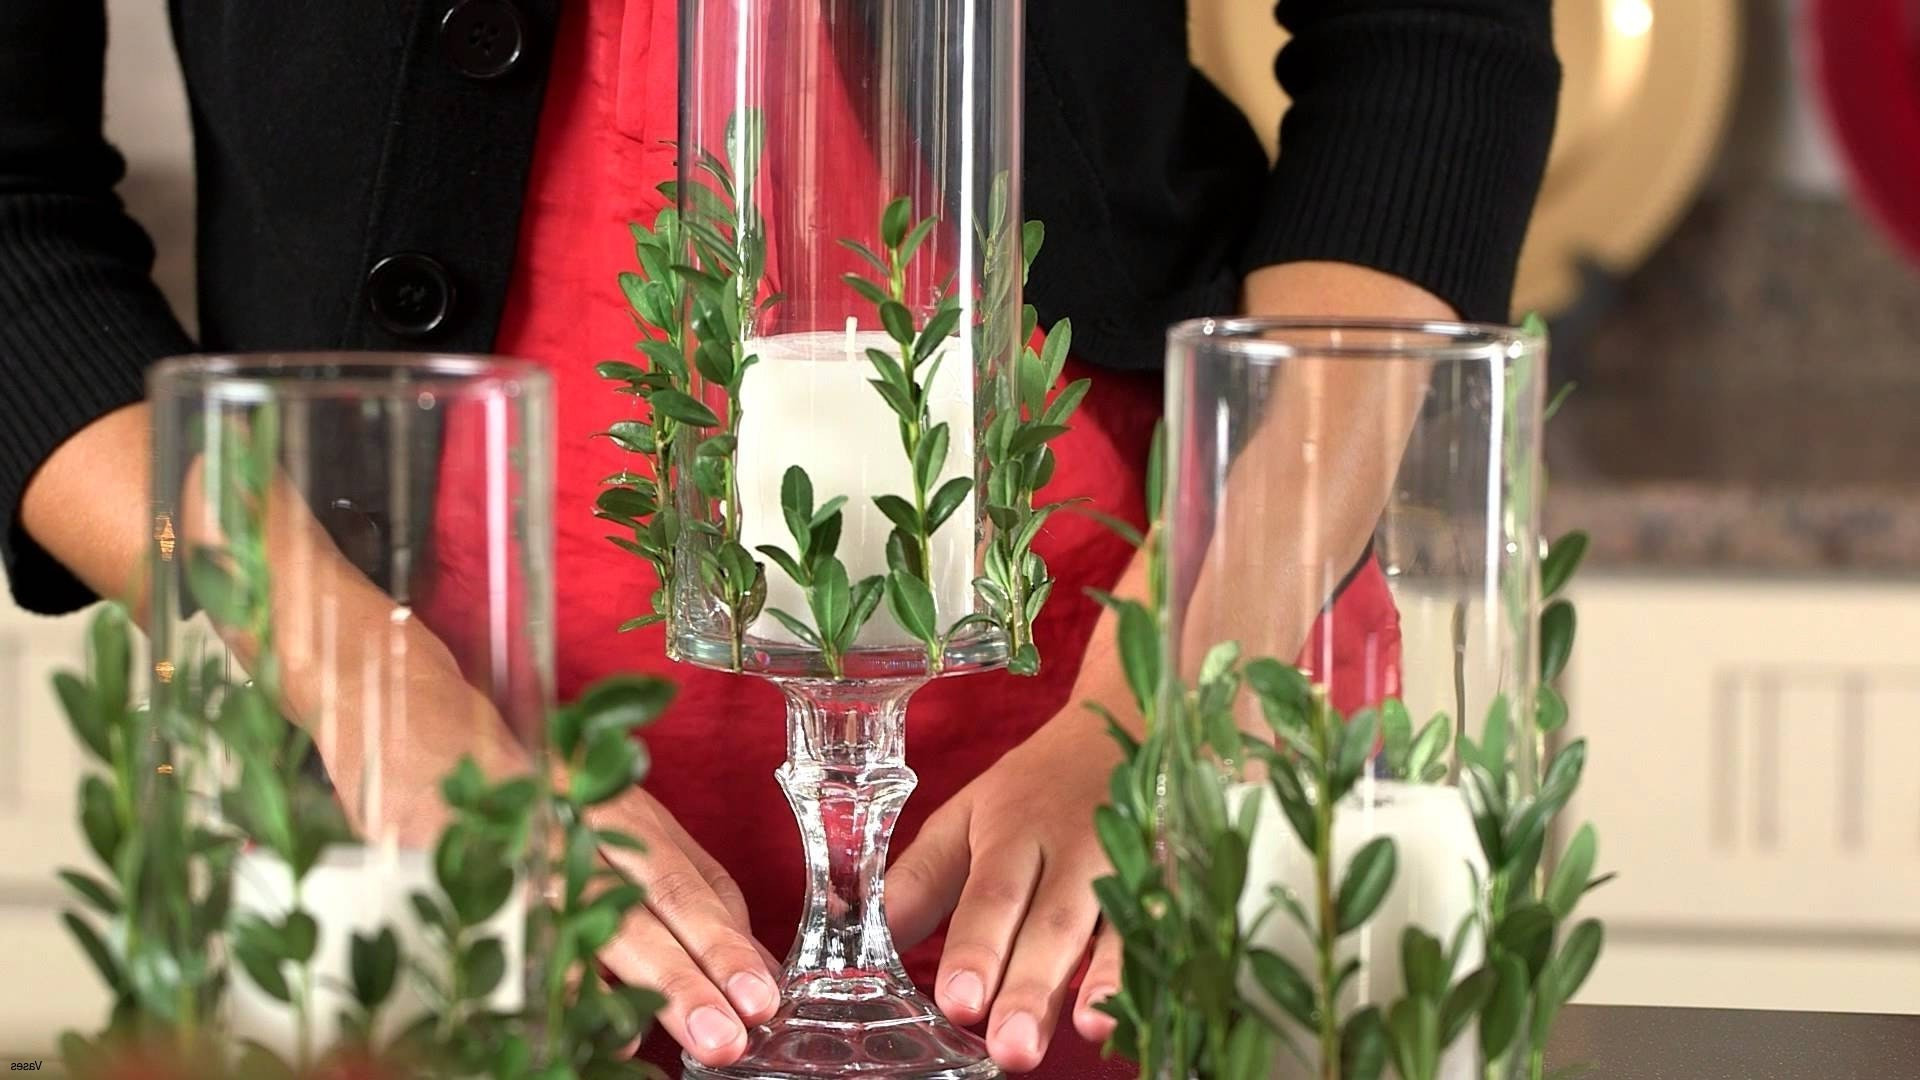 tall square vase wedding centerpieces of wedding table decorations new mirrored square vase 3h vases mirror pertaining to wedding table decorations luxury 18 new wedding centerpiece decoration ideas of wedding table decorations wedding table